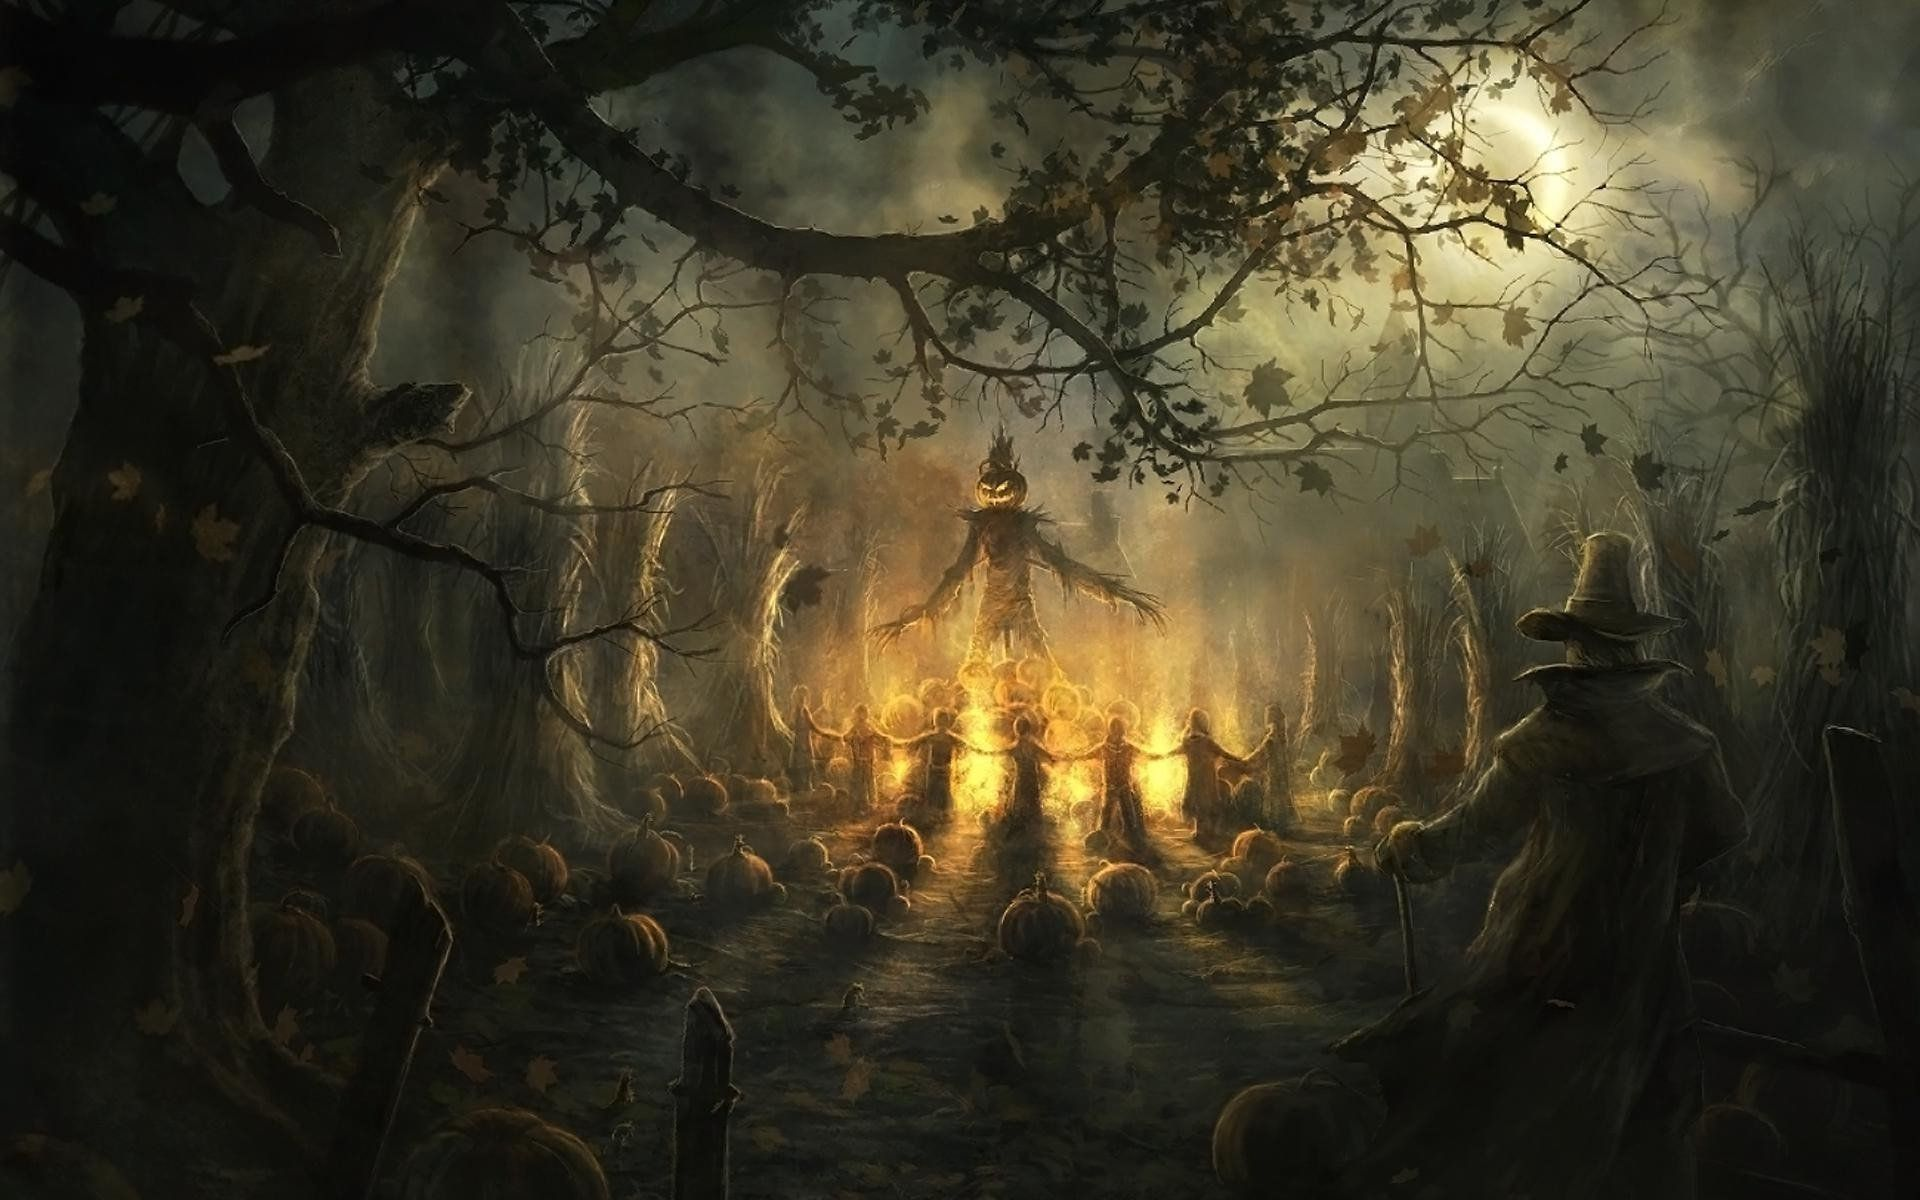 Halloween Scarecrow Pumpkin Night Bonfire Jpg 1920 1200 Halloween Images Halloween Backgrounds Halloween Desktop Wallpaper